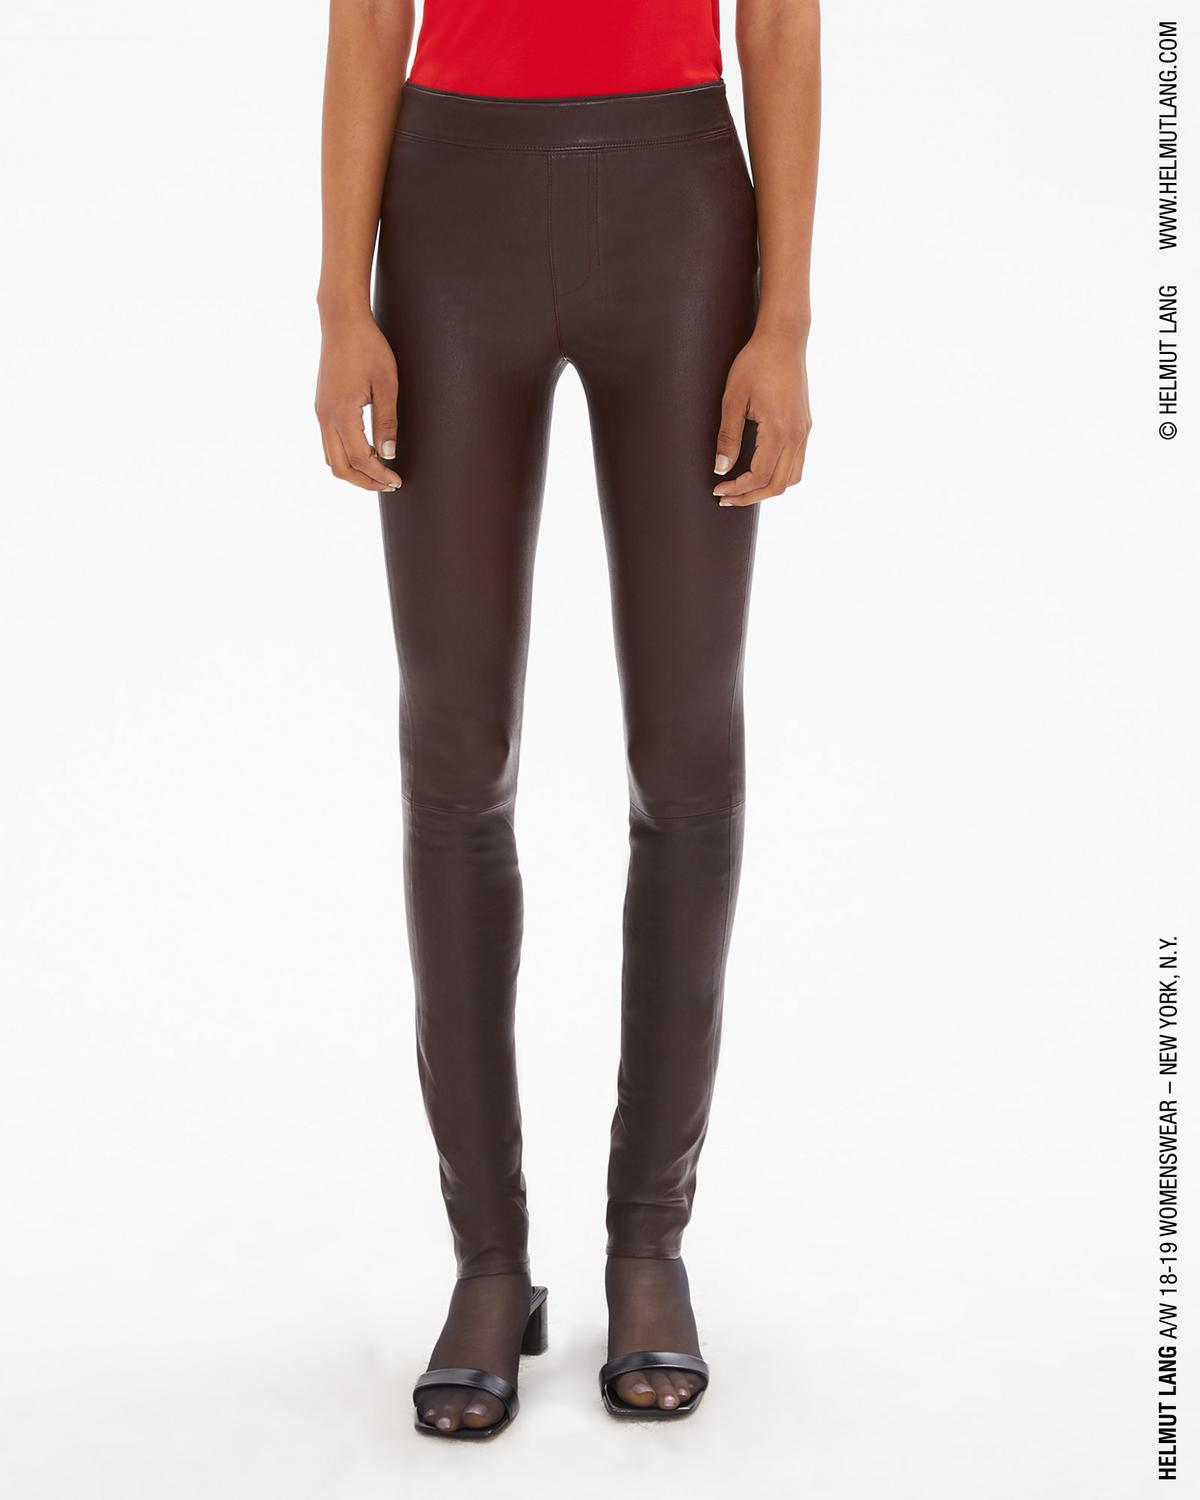 d3e641d97c534a Helmut Lang Women's Leather Leggings in Wine | WWW.HELMUTLANG.COM